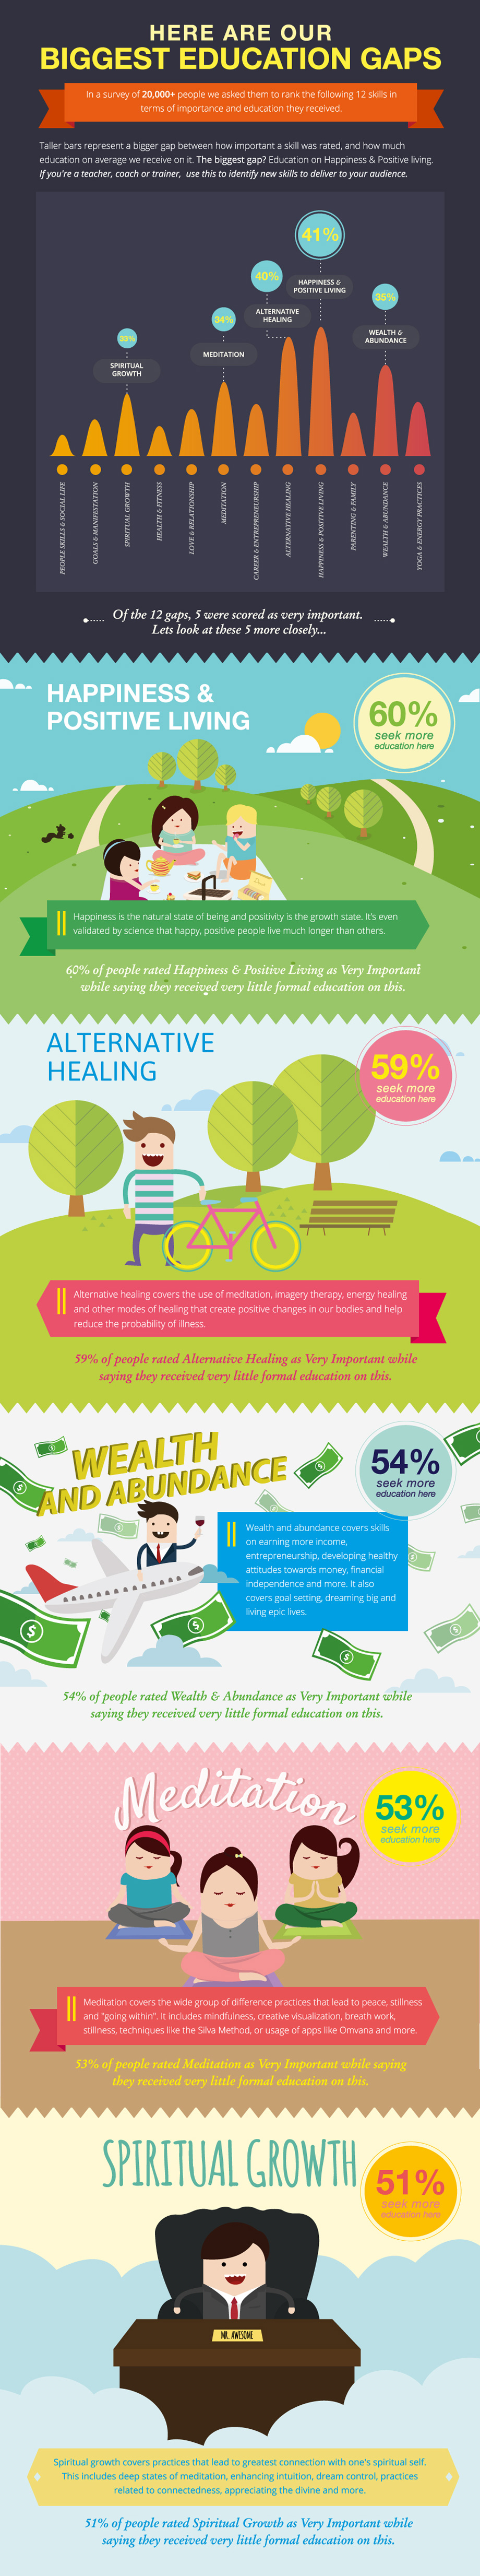 Happiness and Positive Living infographic